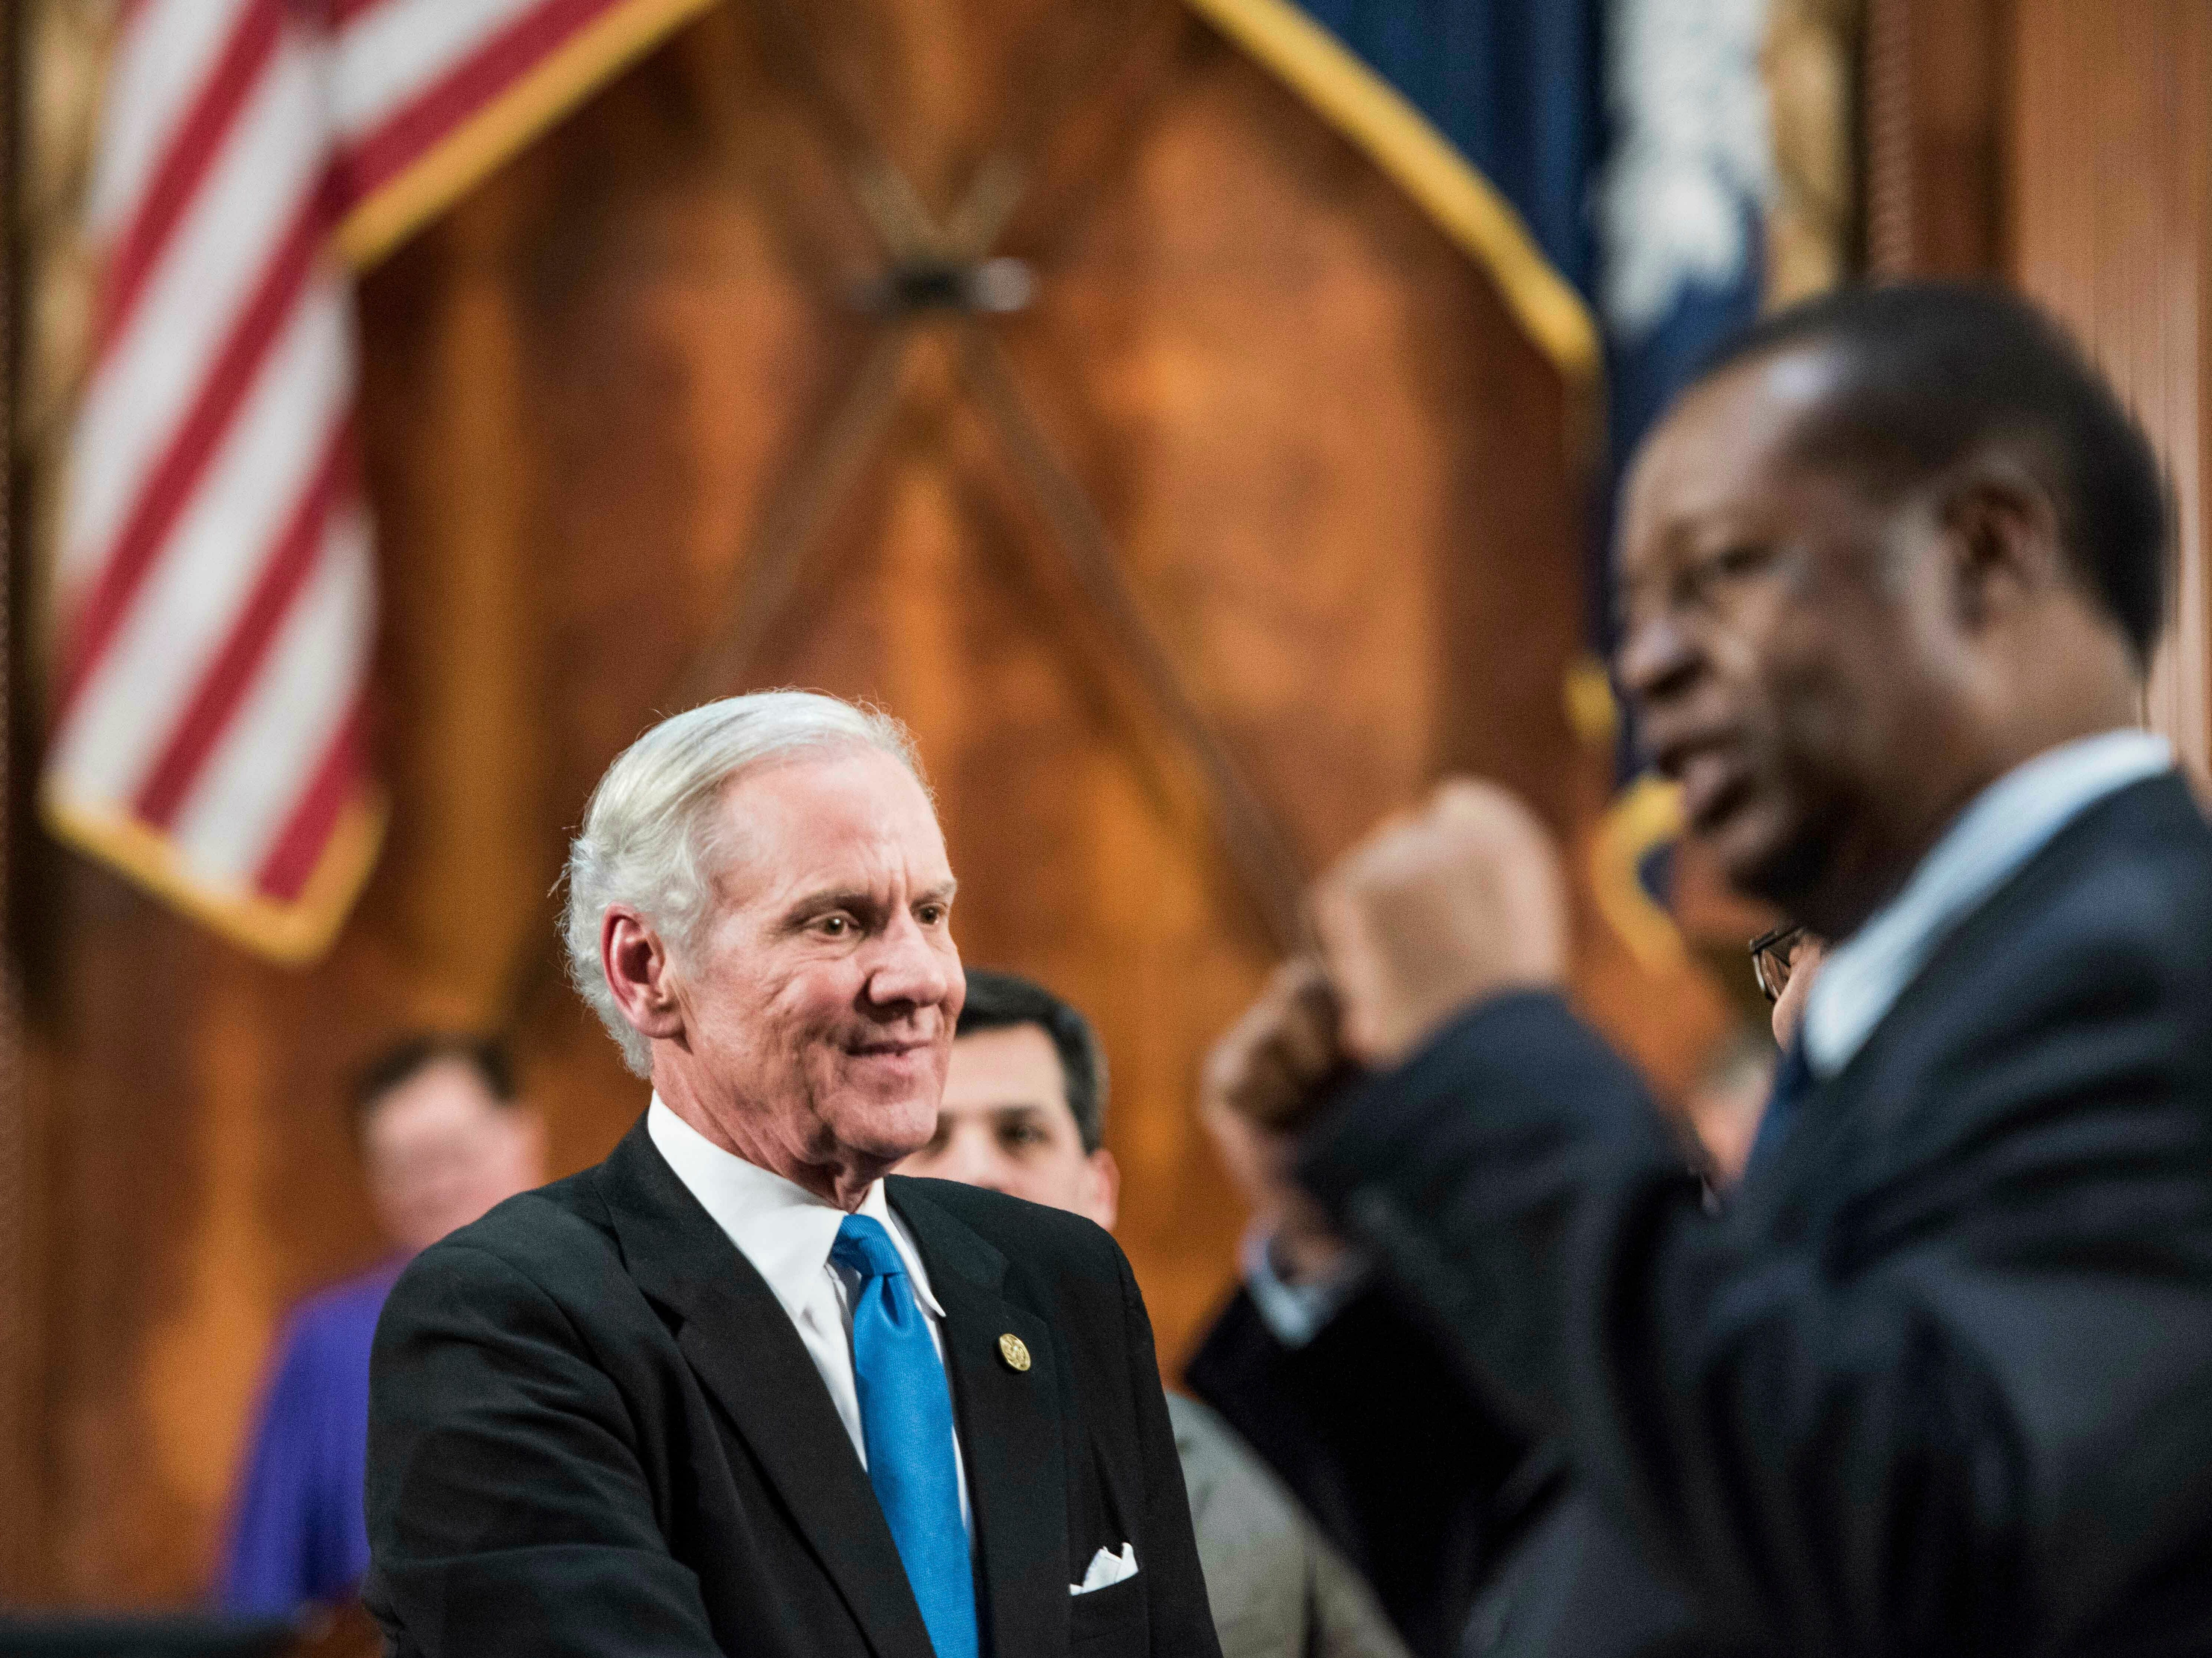 South Carolina Governor Henry McMaster greets lawmakers as Rep. Carl Anderson, D-Georgetown, right, pumps his fists after the State of the State address at the South Carolina Statehouse, Wednesday, Jan. 23, 2019, in Columbia, S.C. (AP Photo/Sean Rayford)